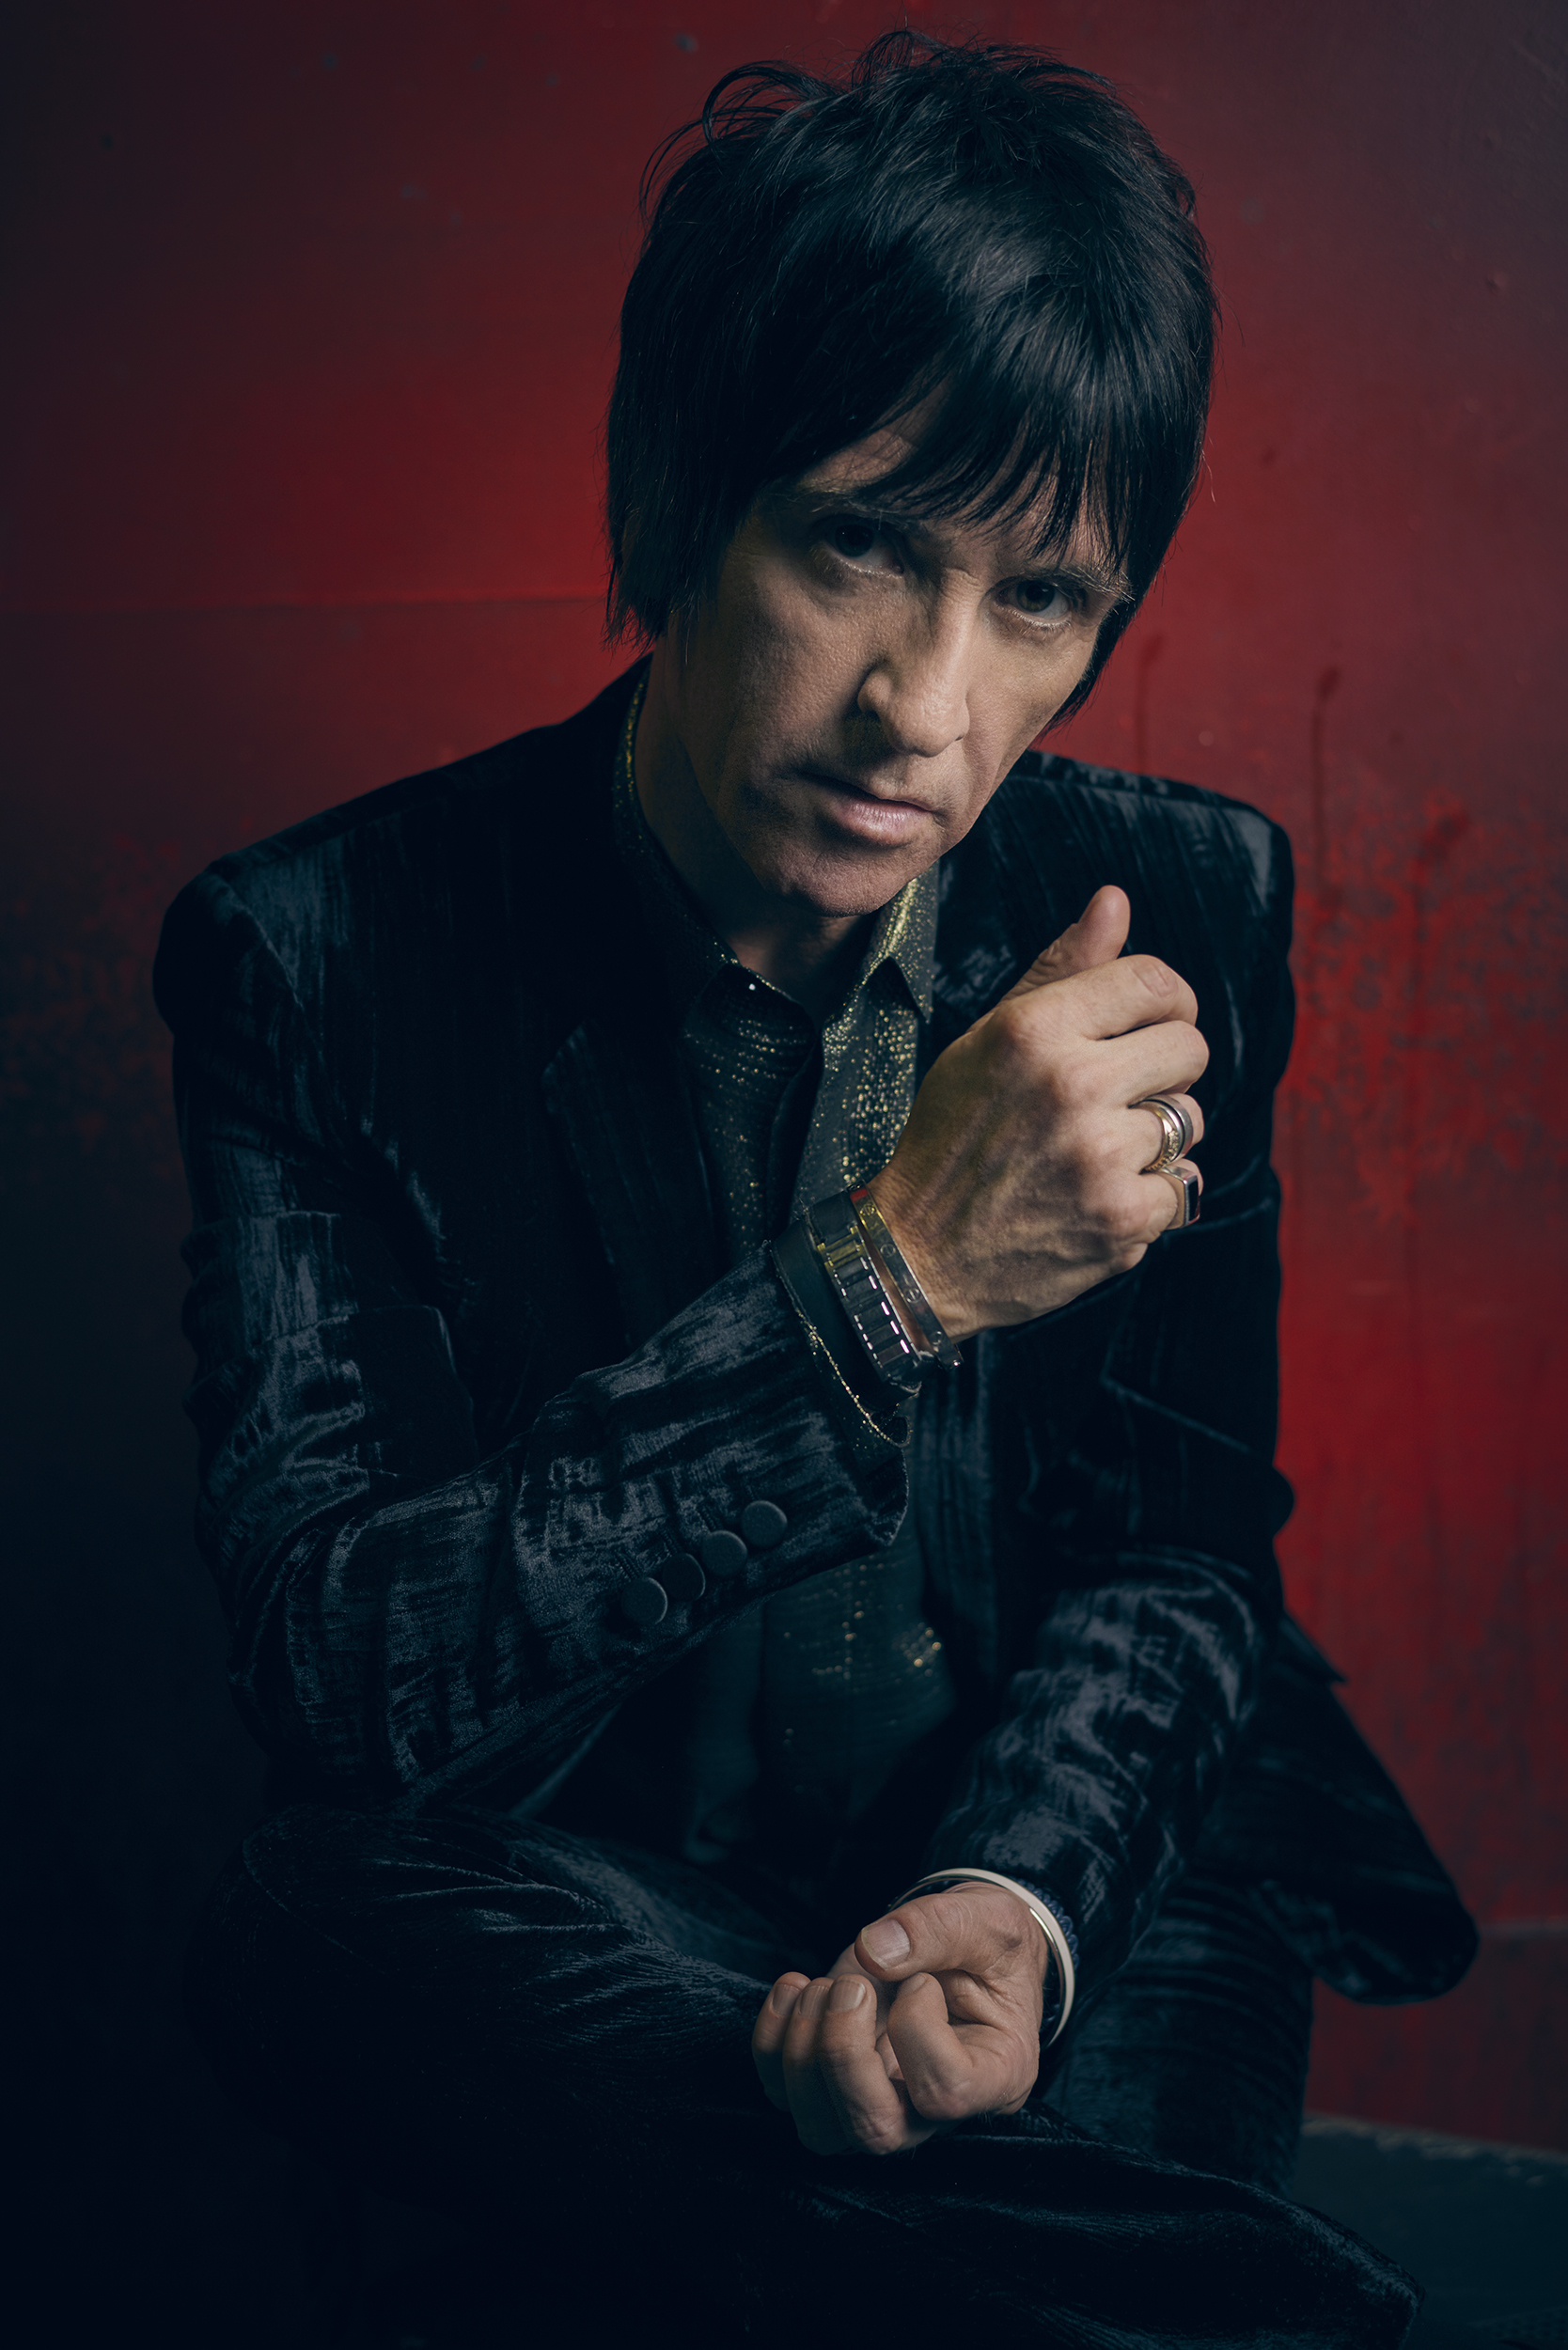 Johnny_Marr_89711_low_res.jpg